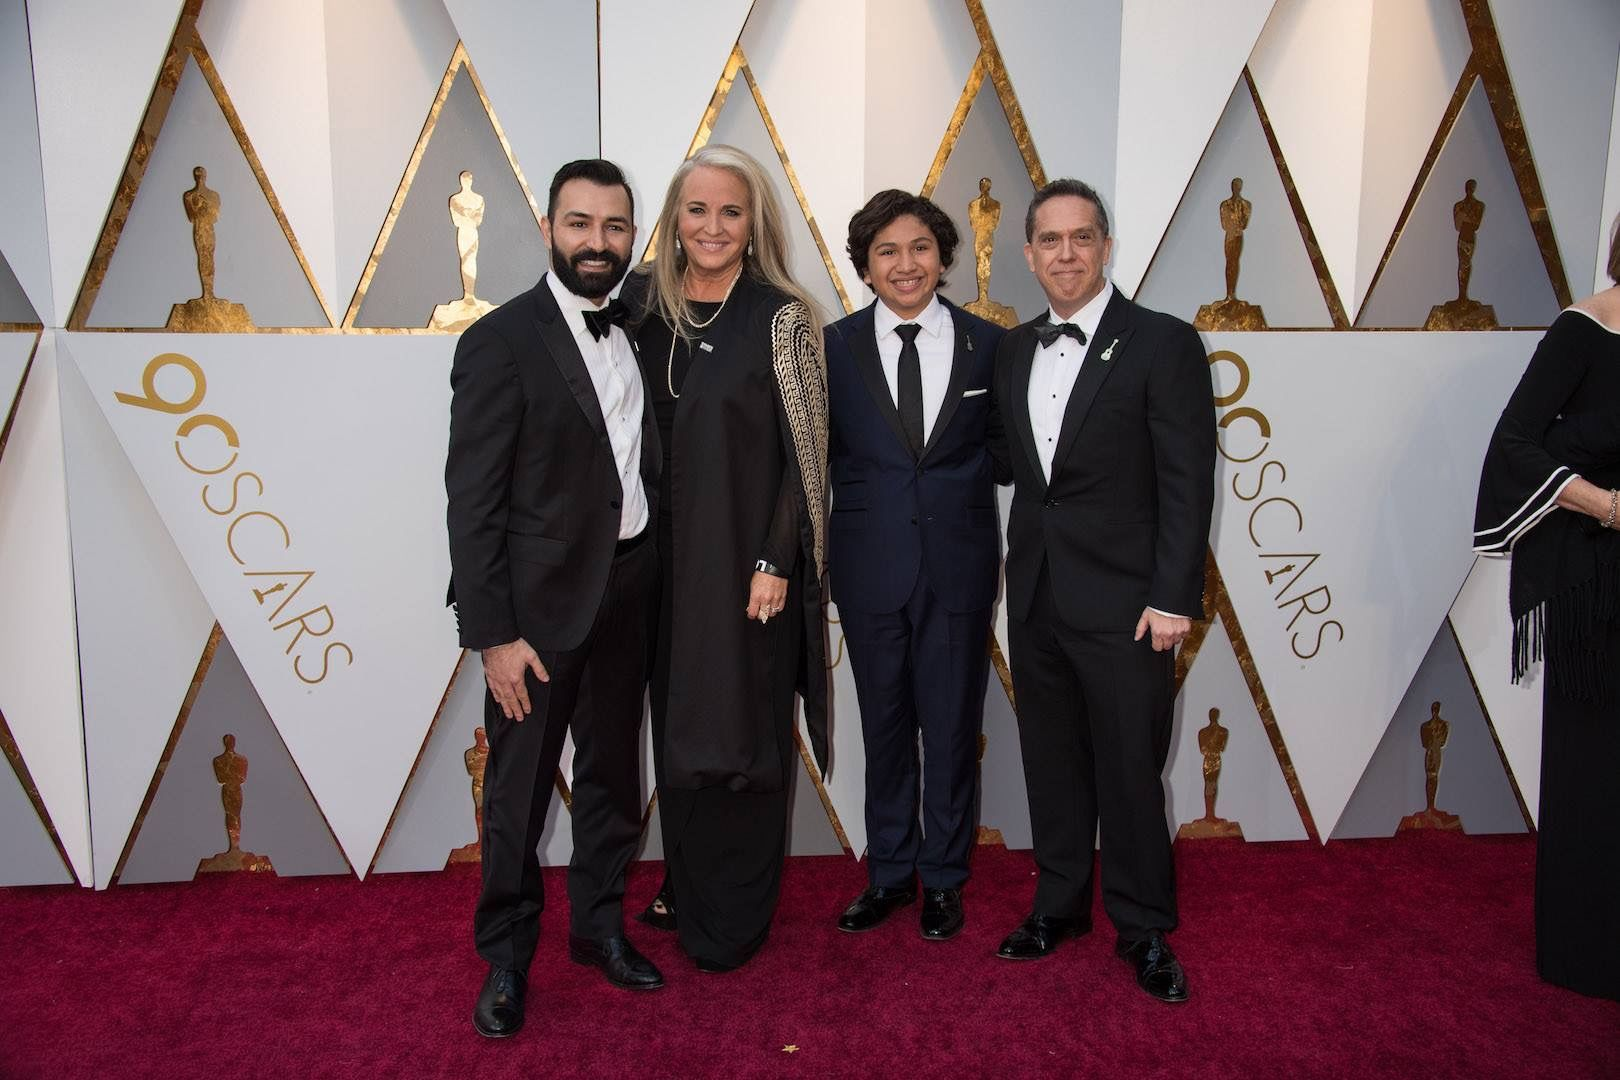 ADRIAN MOLINA, DARLA K. ANDERSON, ANTHONY GONZALEZ, AND LEE UNKRICH AT THE OSCARS